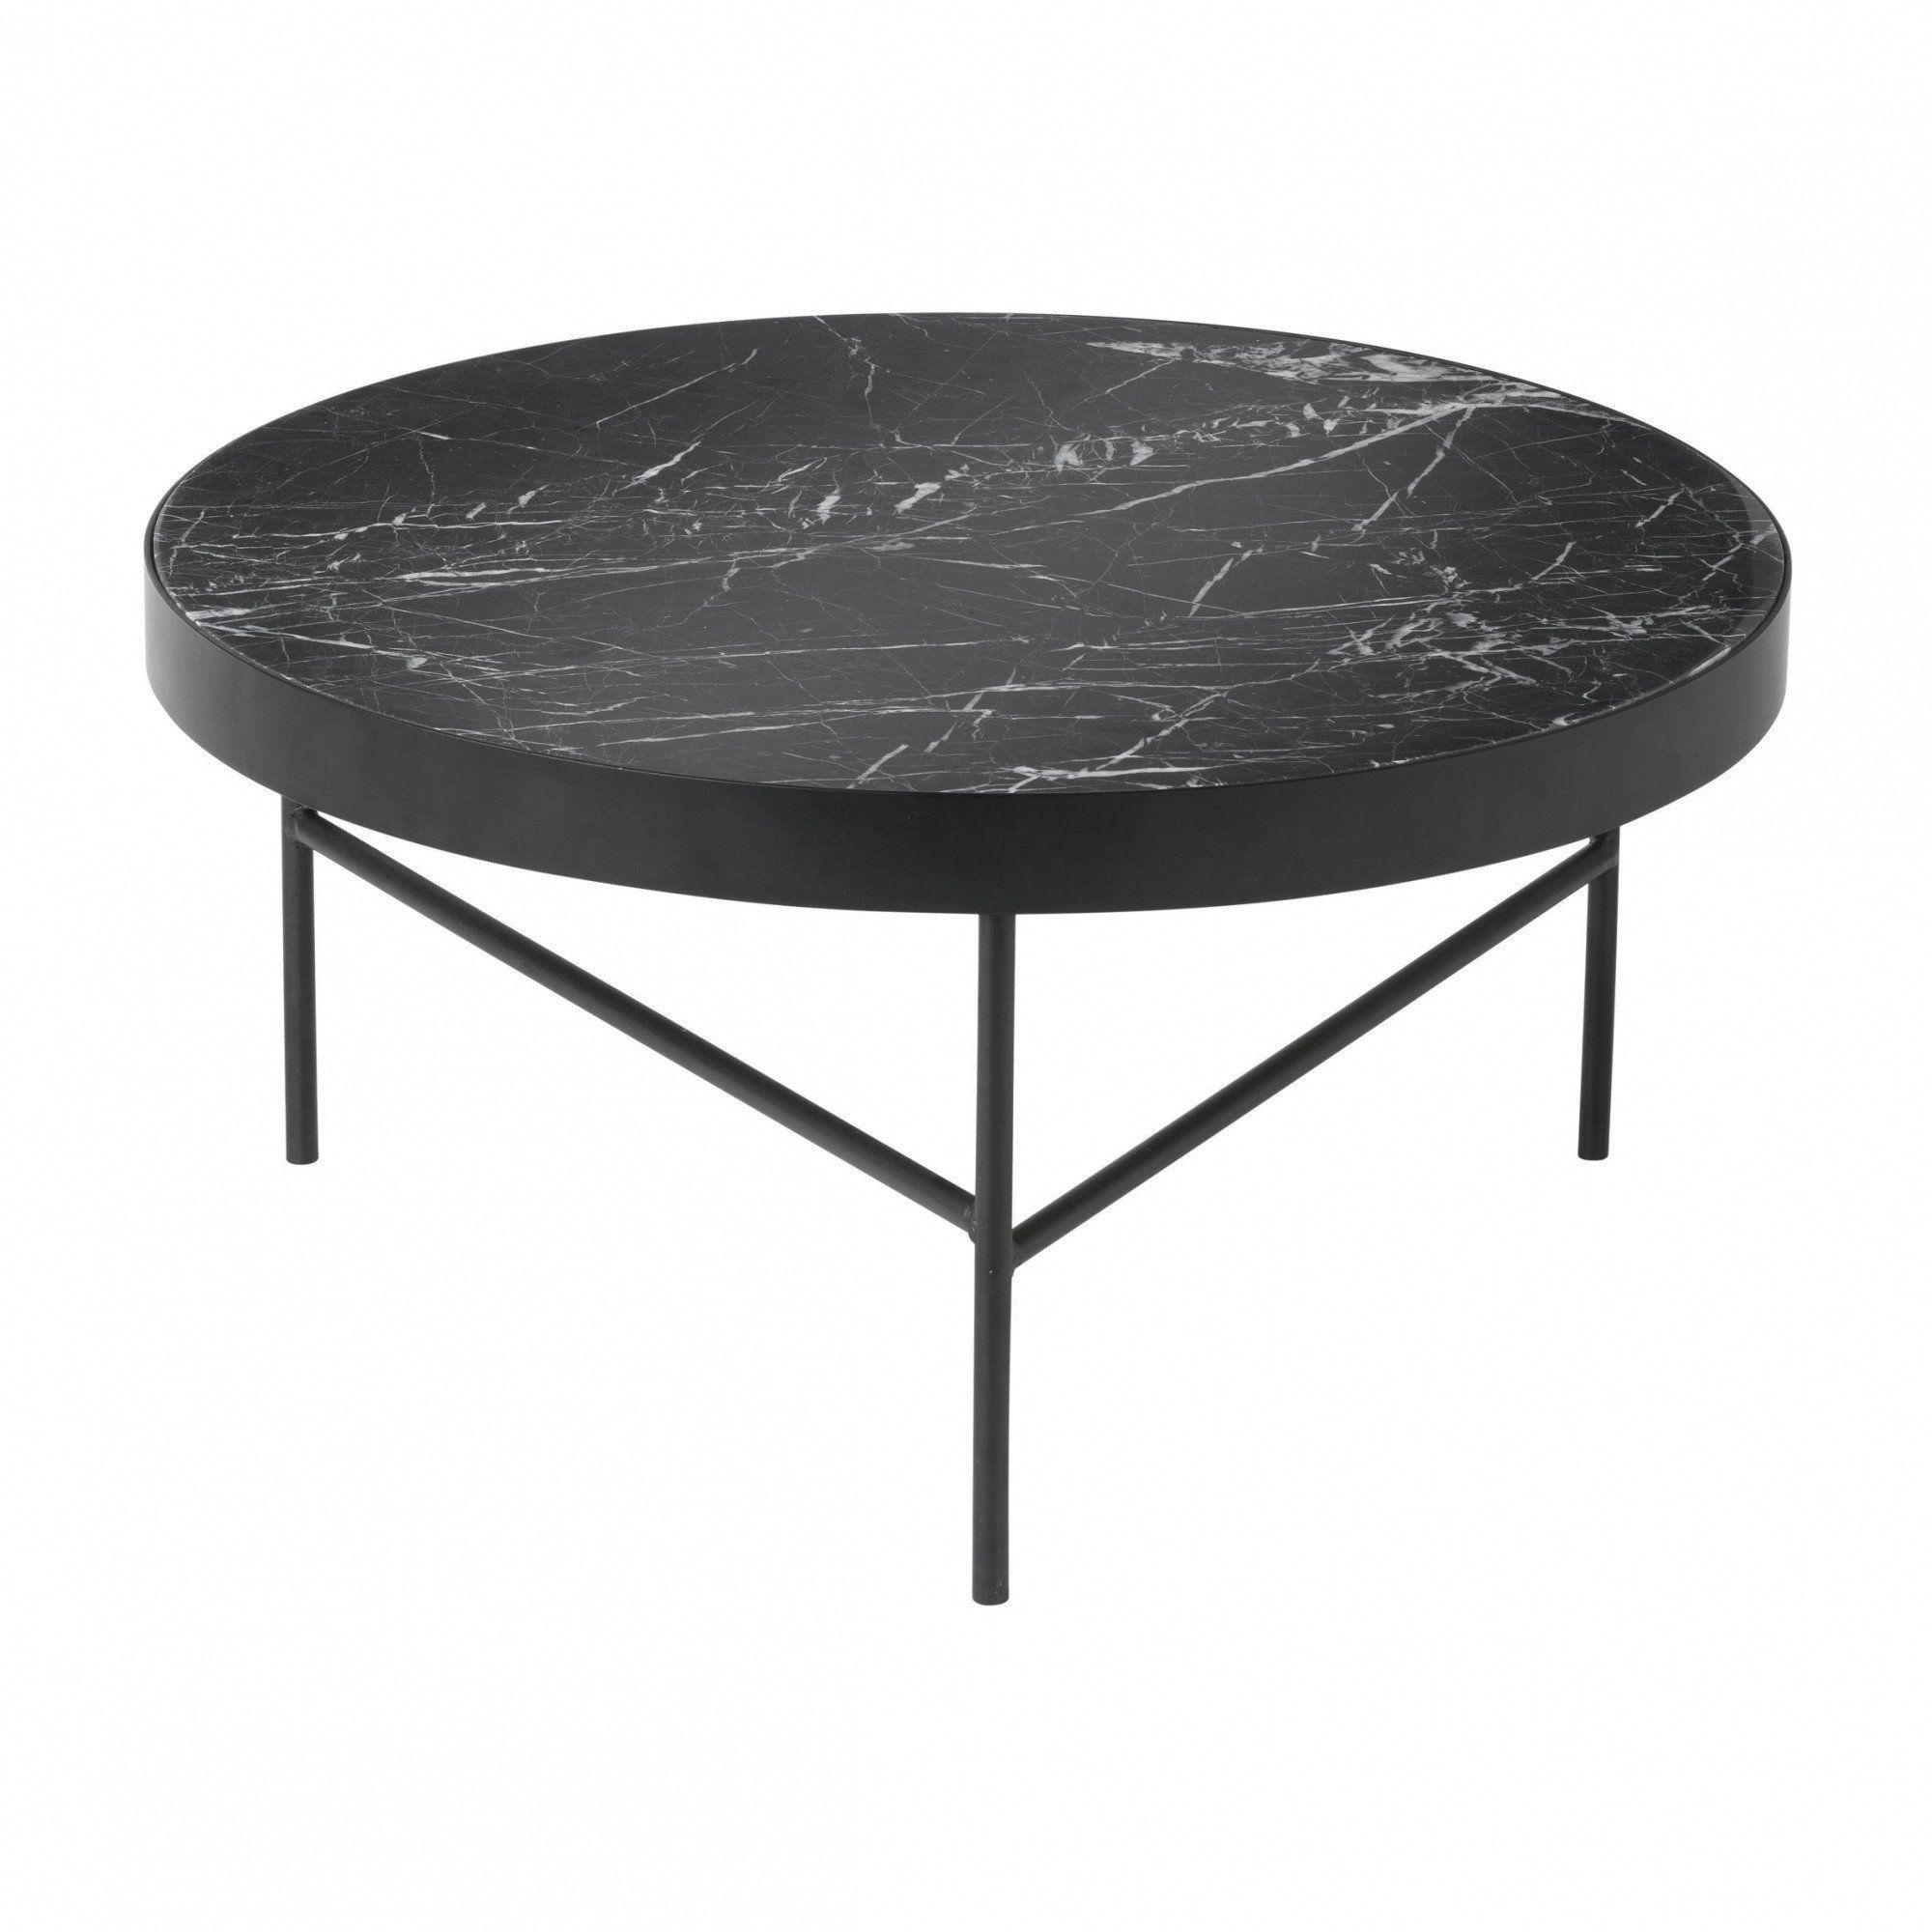 Ferm LIVING   Marble Coffee Table   Marble ...